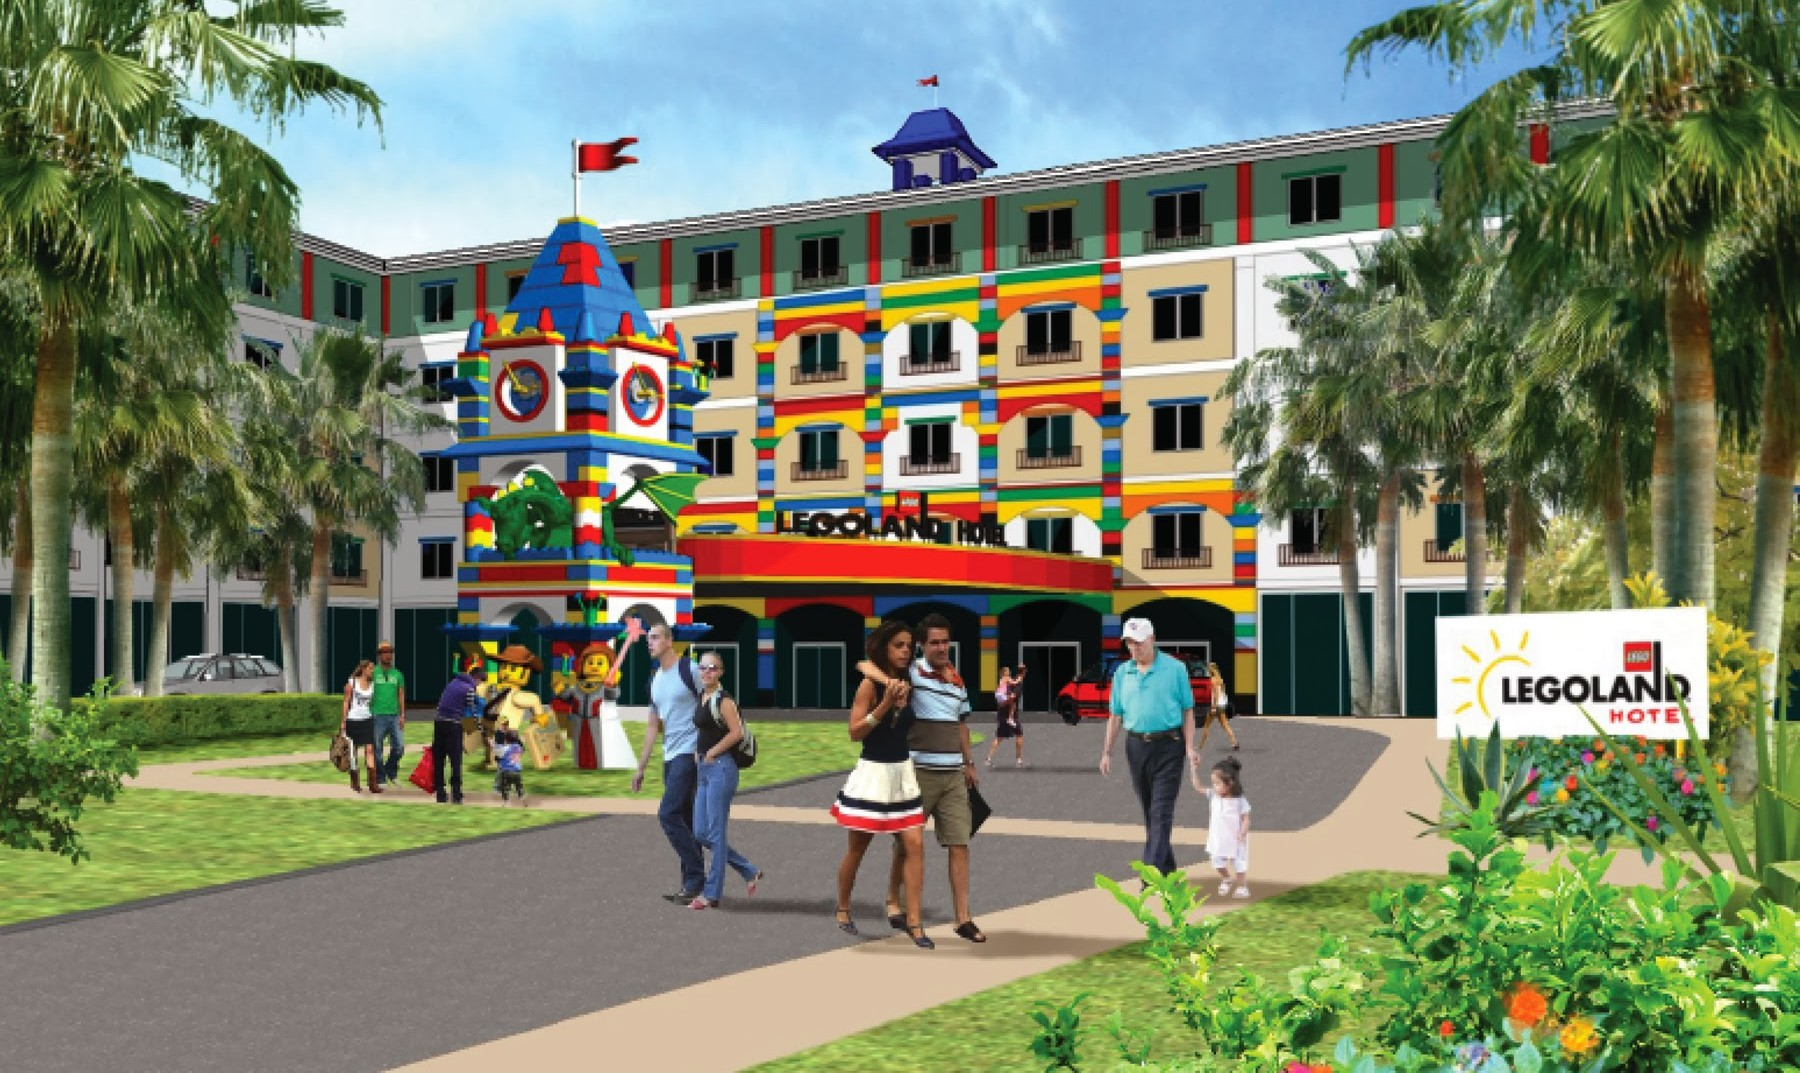 new hotel announced for legoland florida in 2015